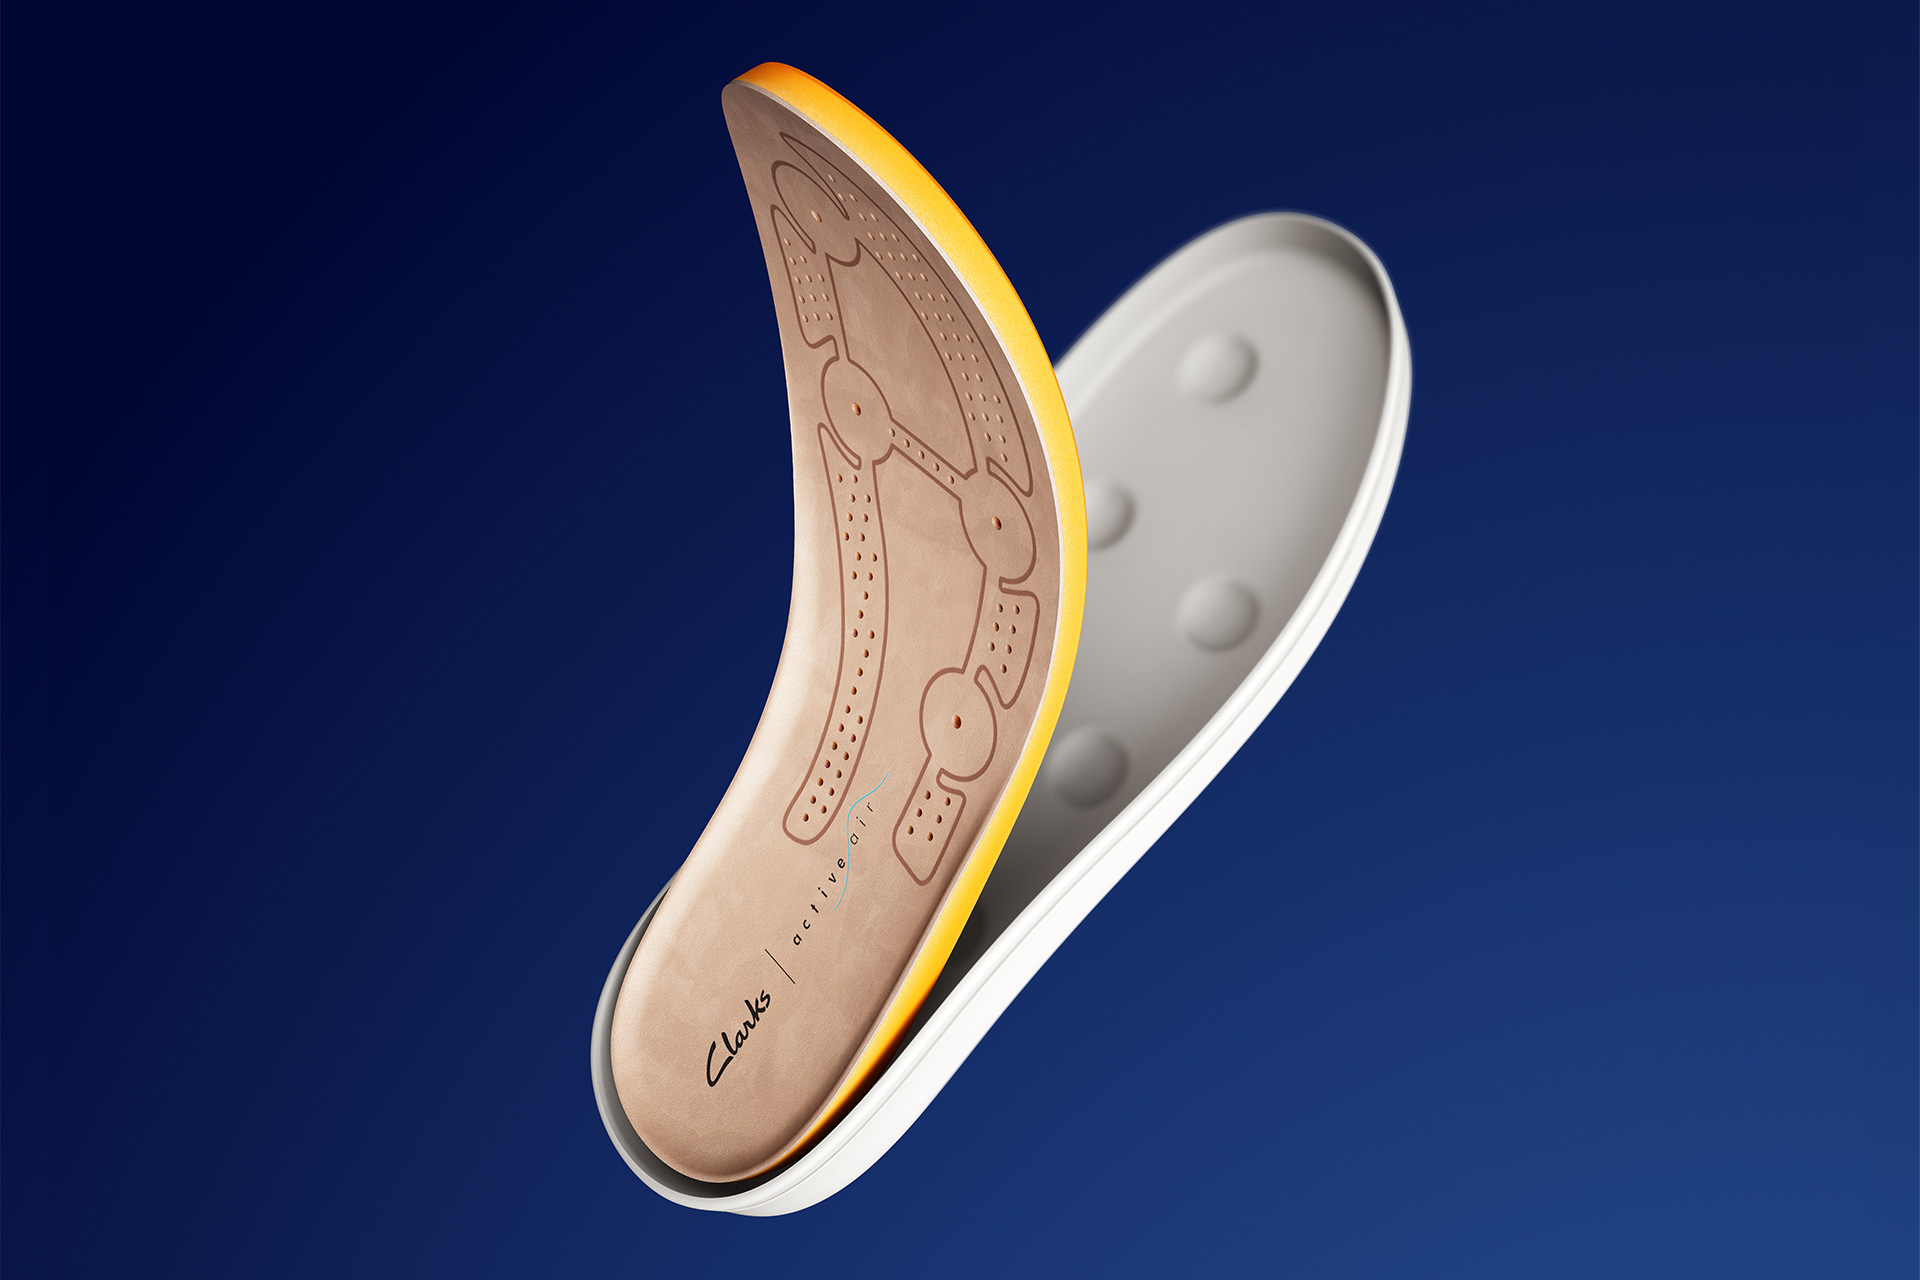 clarks-active-air-shoe-product-cgi-03